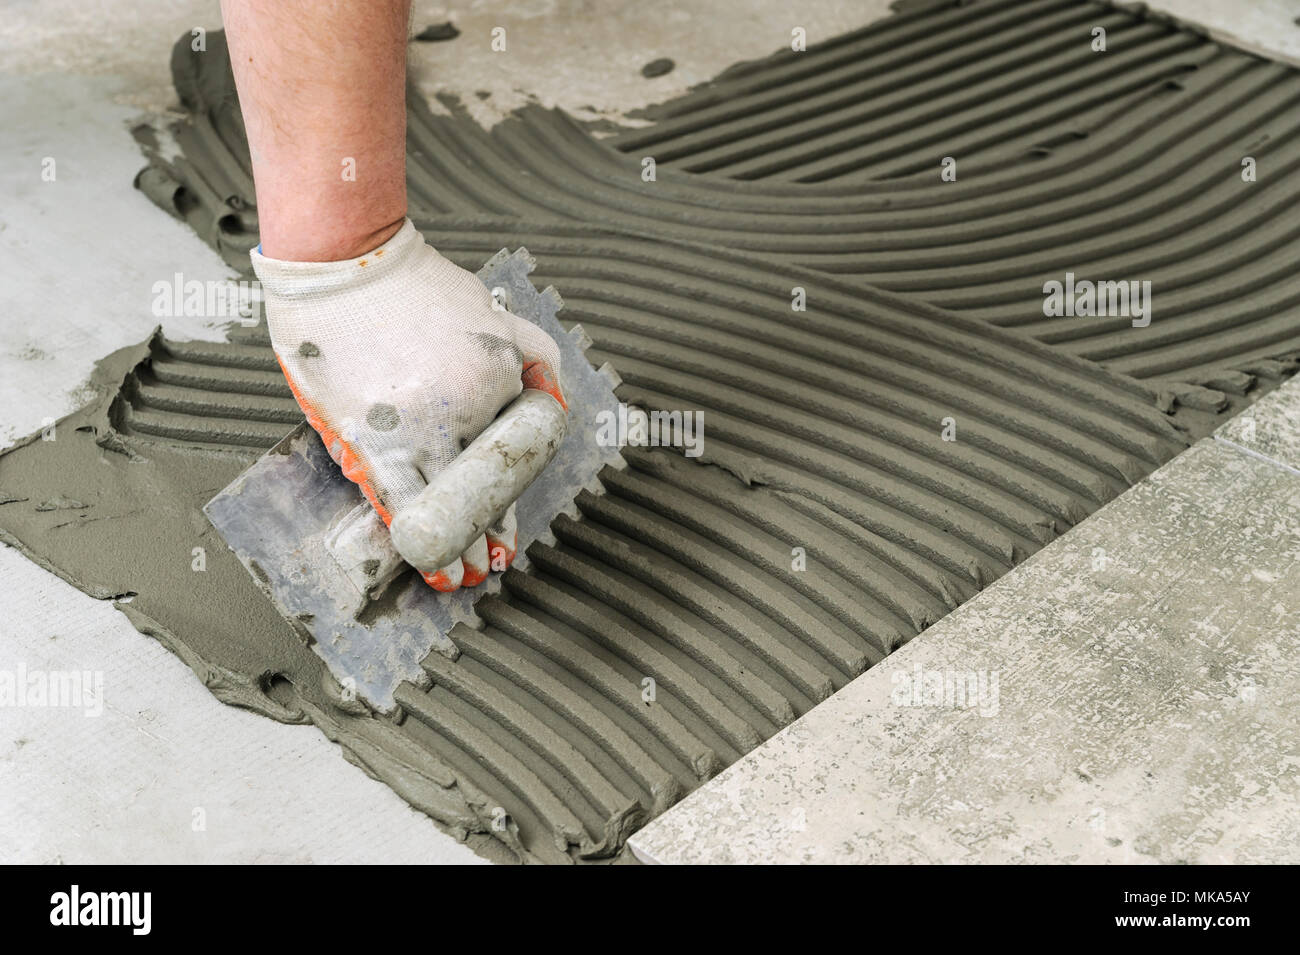 Laying Ceramic Tiles Troweling Mortar Onto A Concrete Floor In